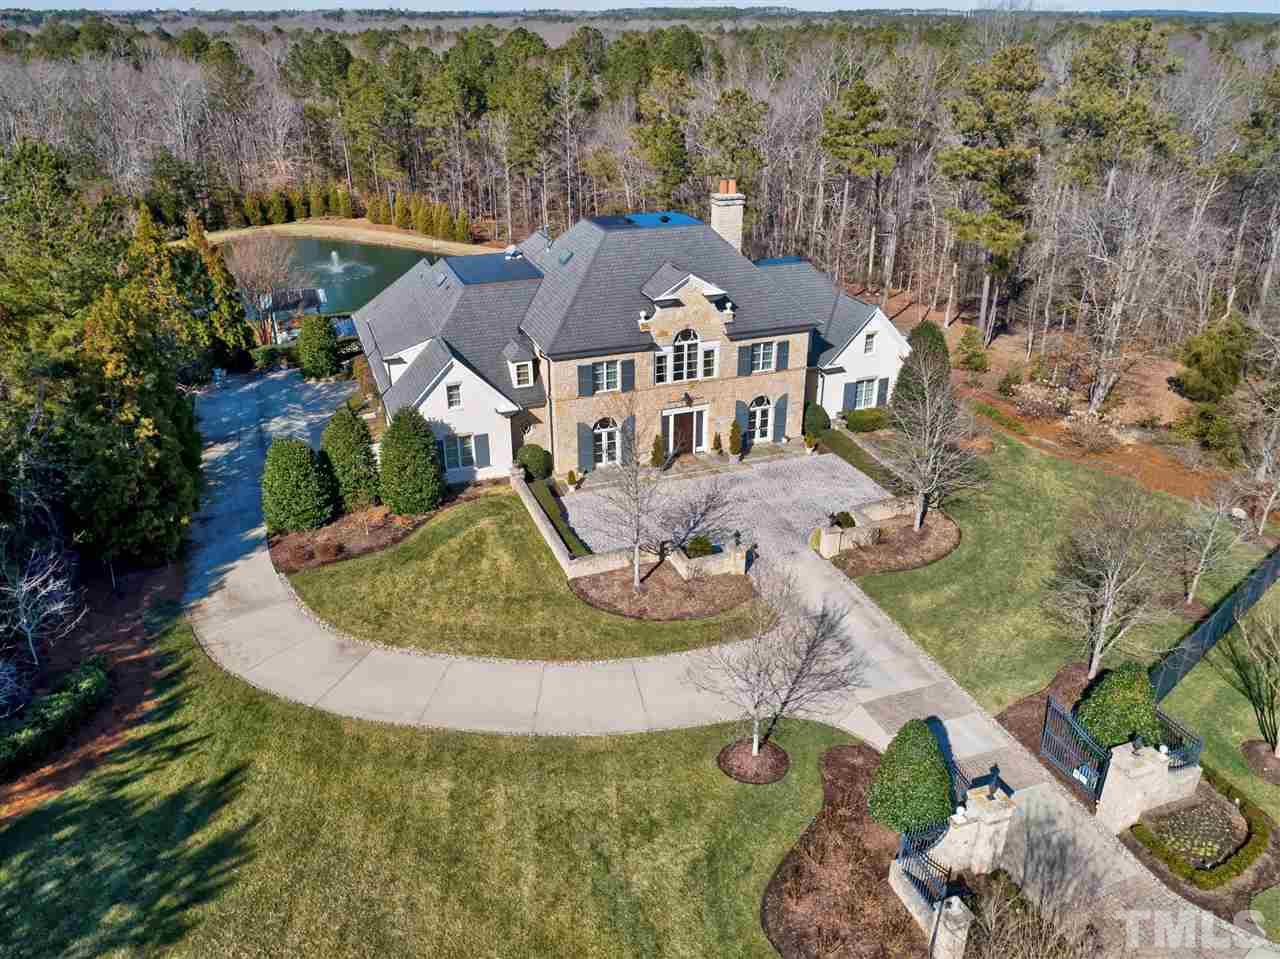 "On nearly 5 acres, most of it fenced, this estate provides a sense of exclusivity and security. To quote the builder, it is the highest quality structure possible"" & virtually soundproof with steel reinforced poured concrete walls, ceilings & floors"